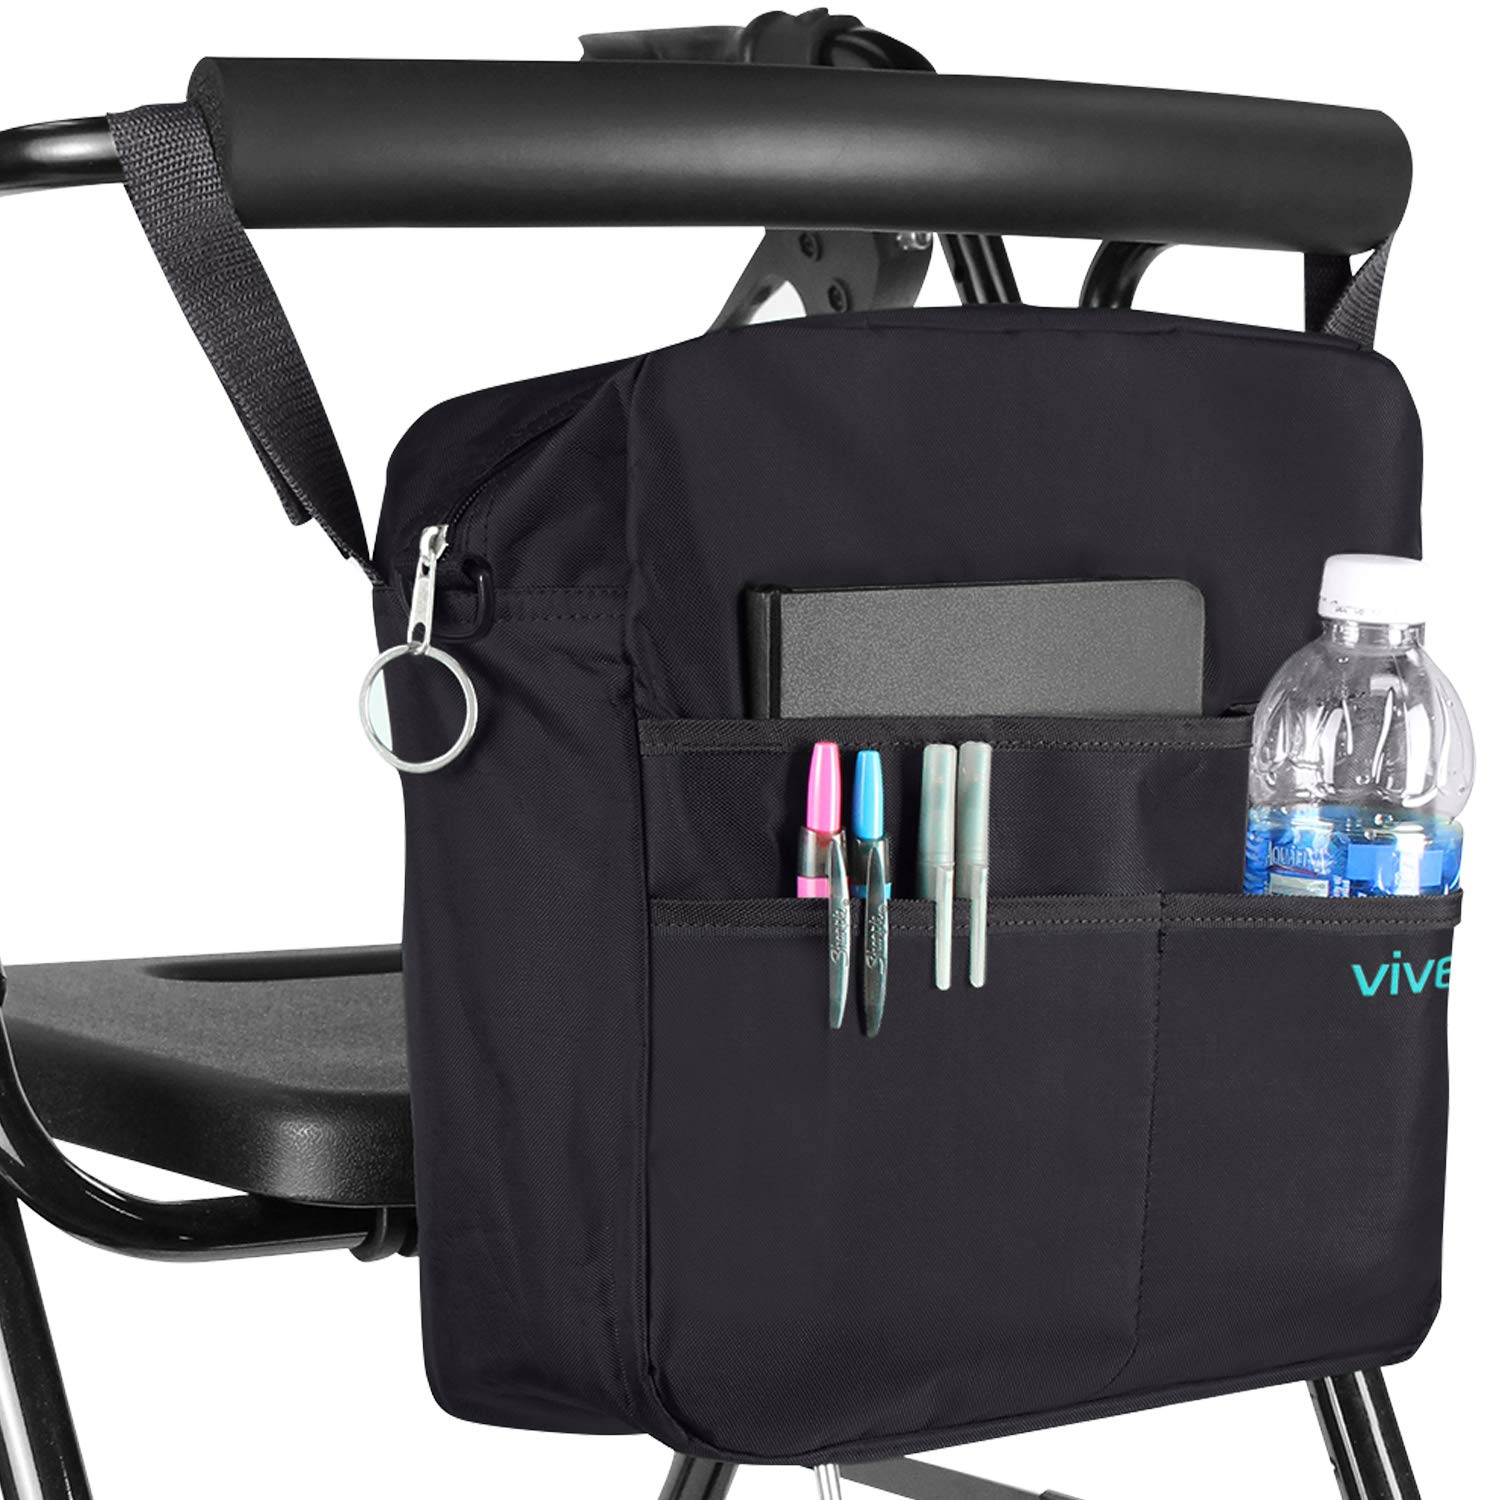 c4ff890b9ee1 Details about Bag Rollator Travel Tote Accessories Large Universal Carrier  Walker Wheelchair